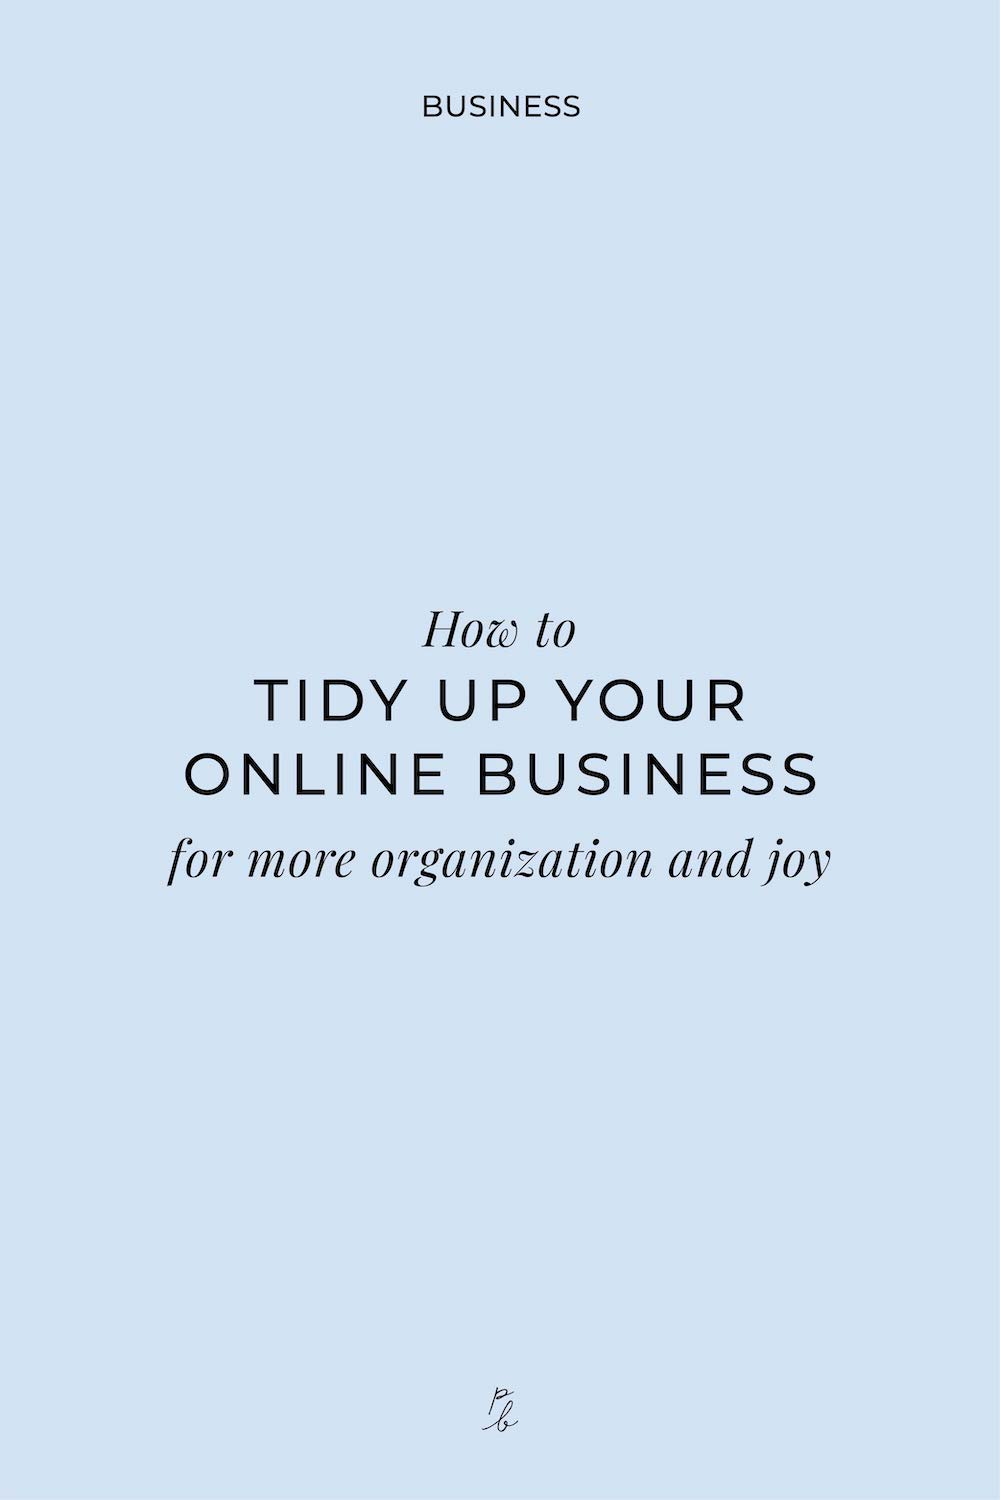 3-How to tidy up your online business for more organization and joy.jpg